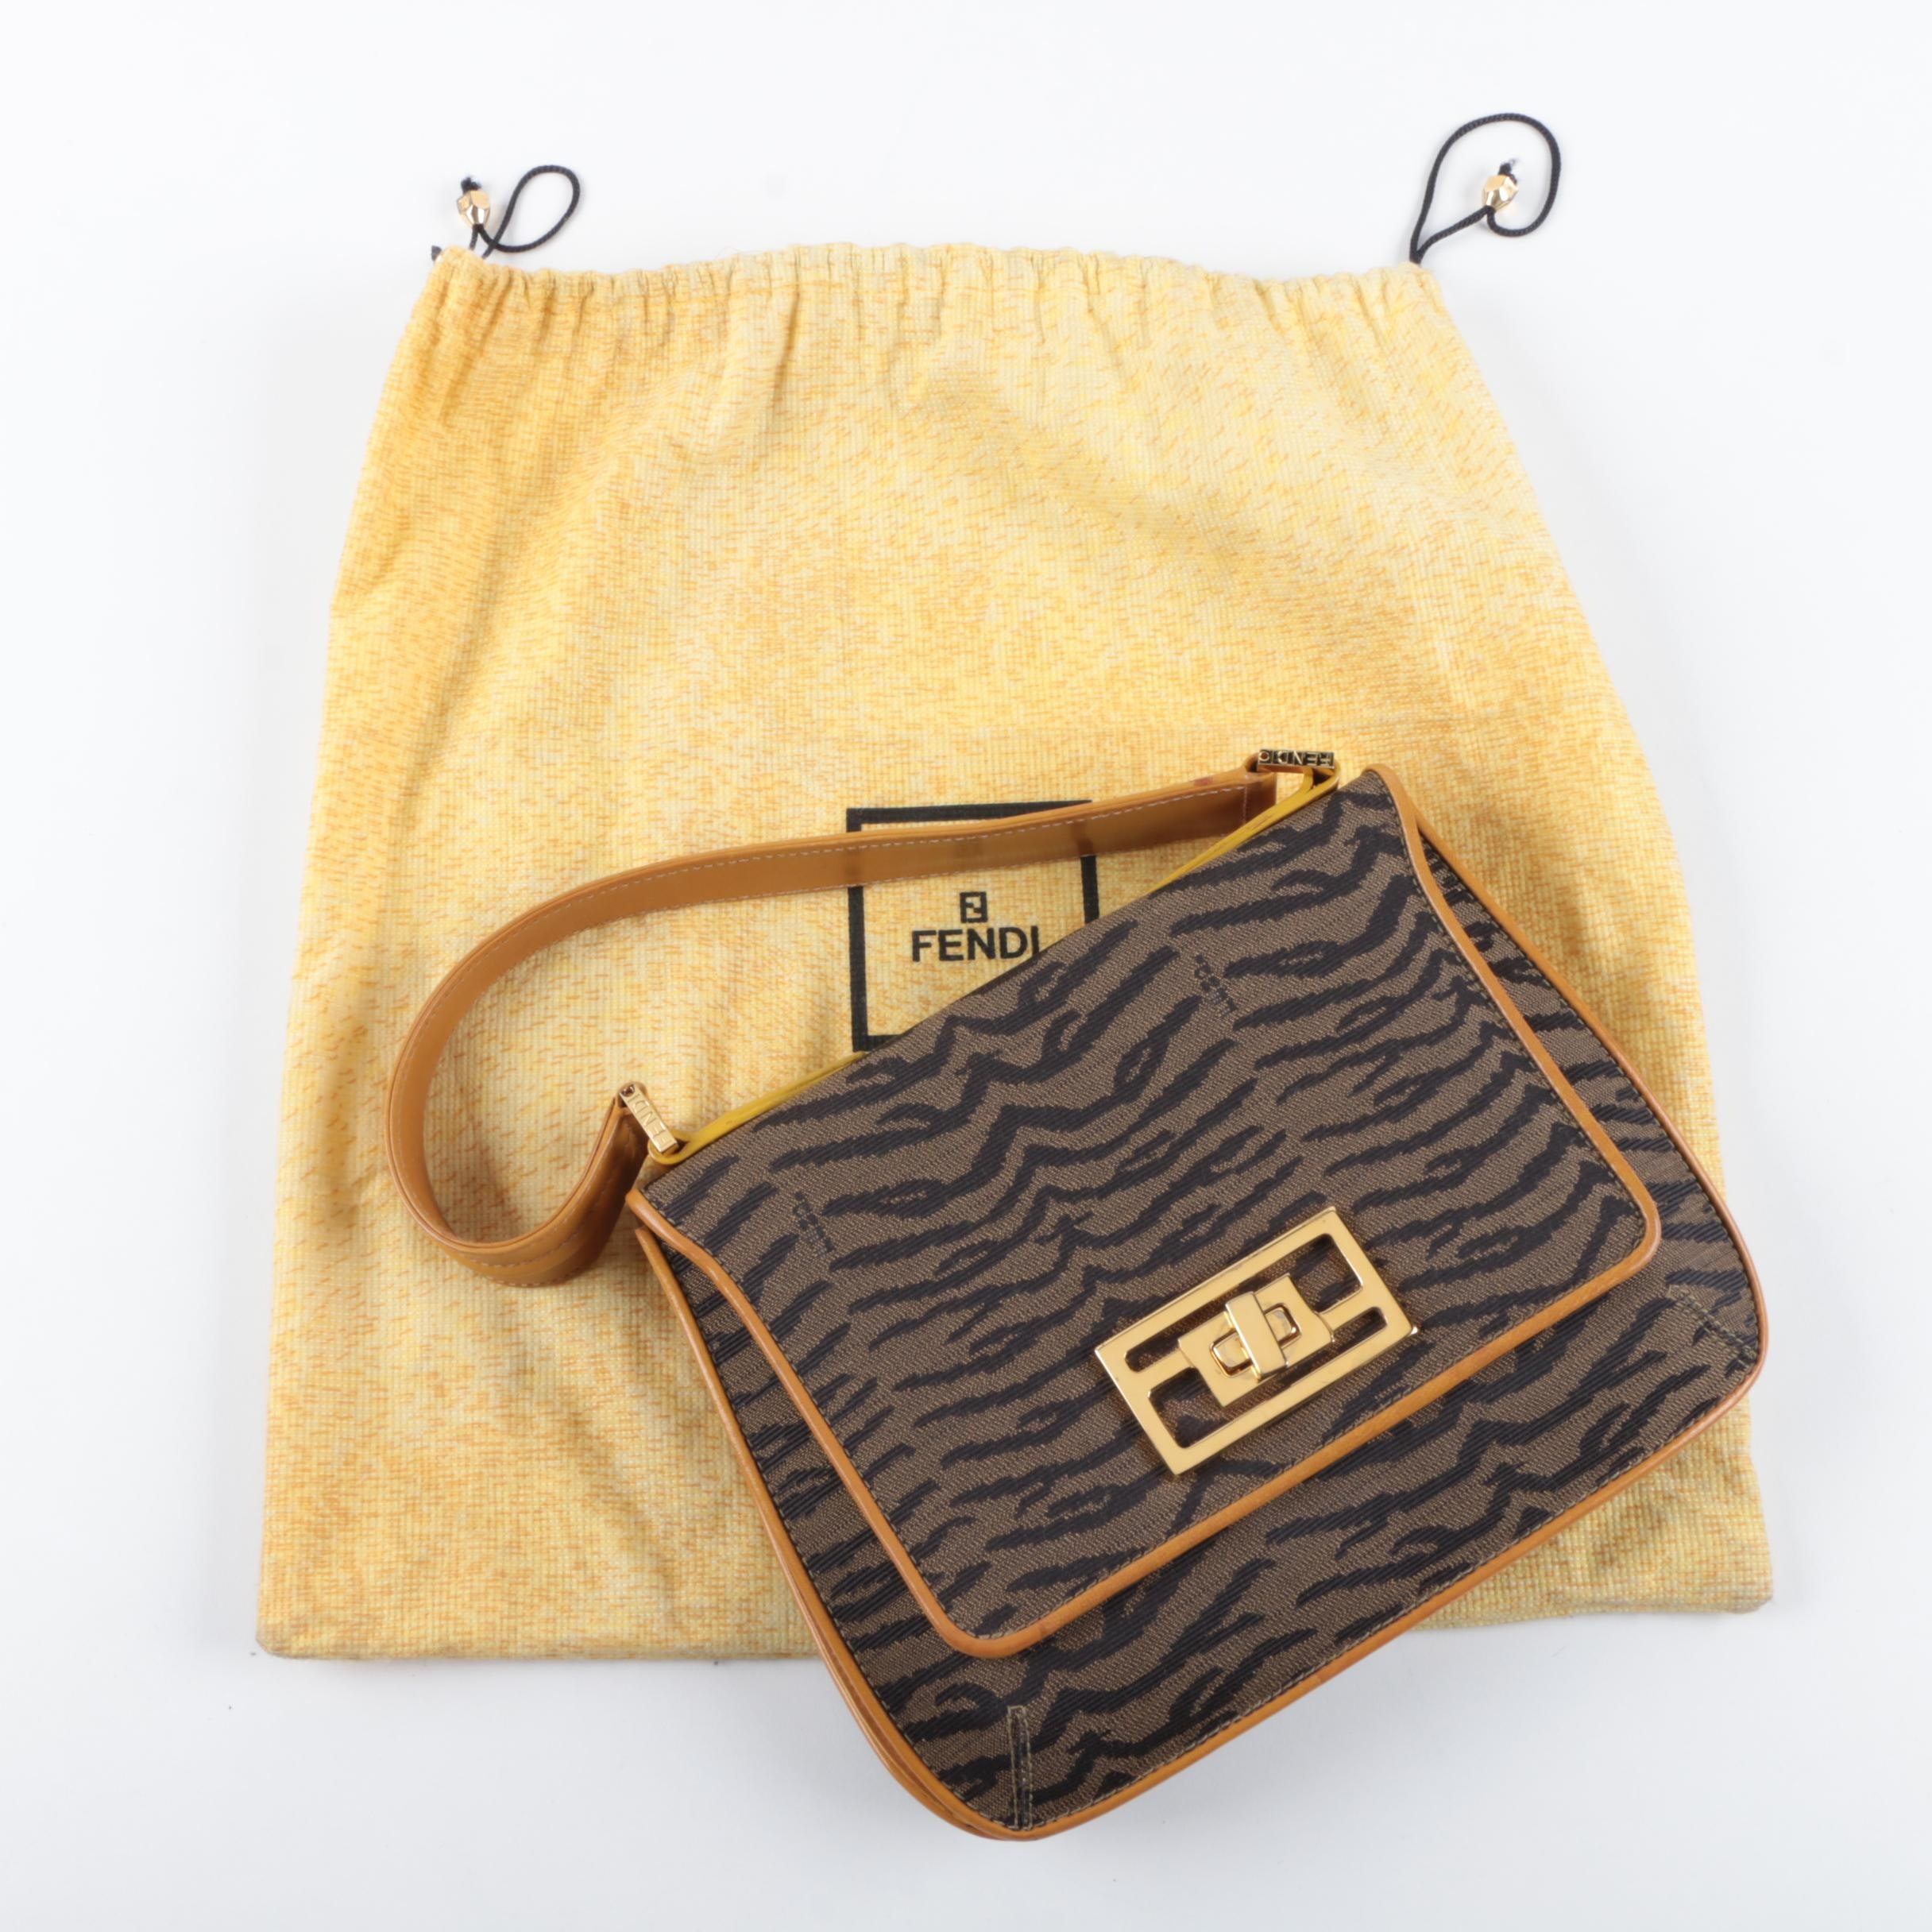 Fendi Tobacco Tiger Patterned Canvas Handbag